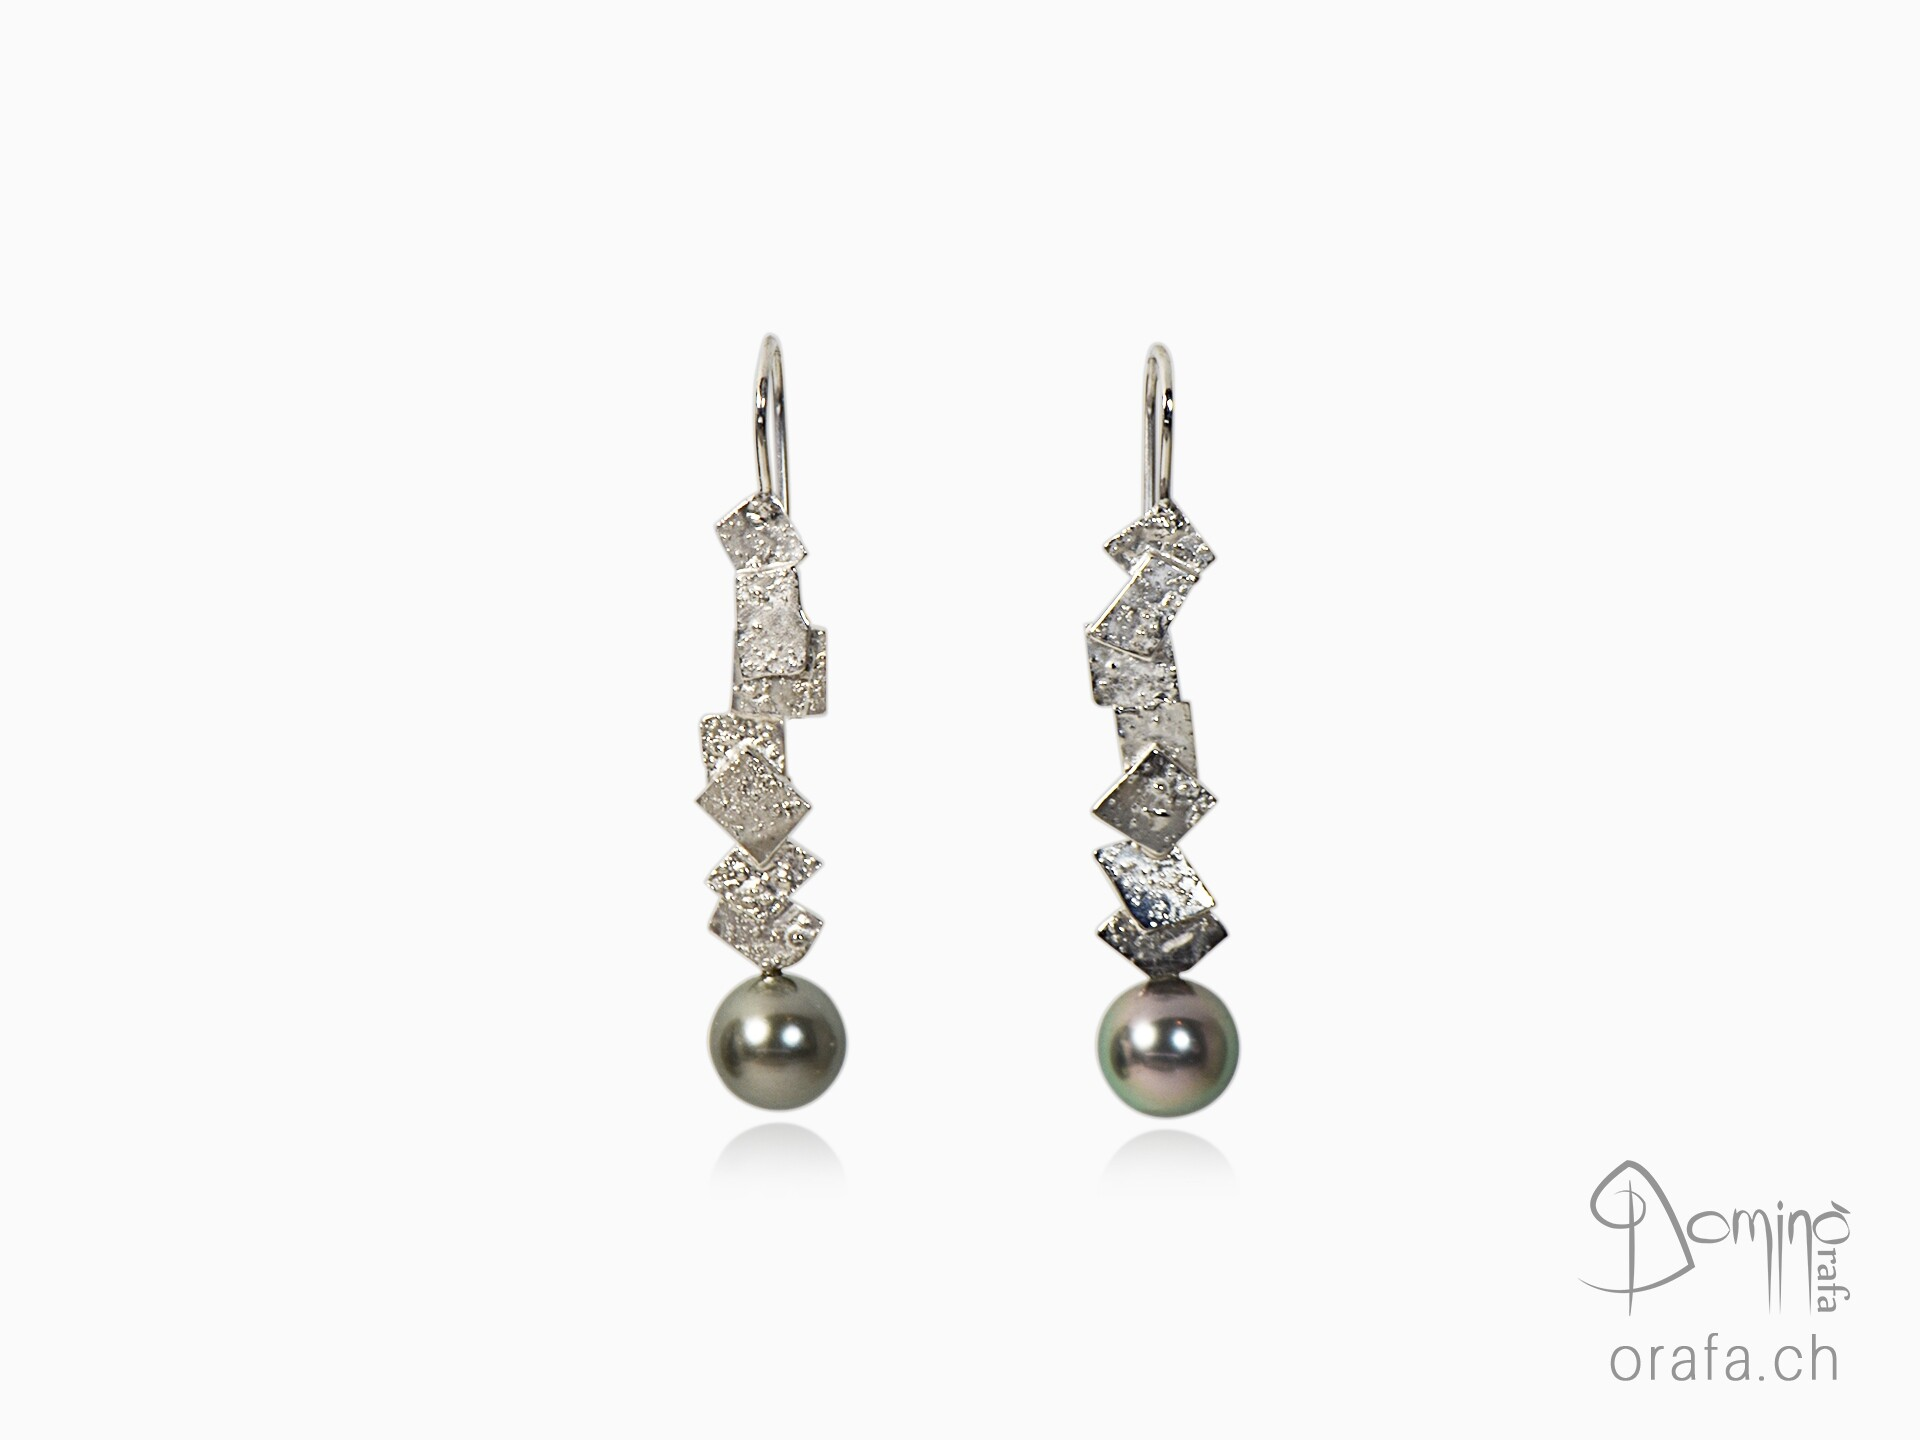 Frammenti earrings with tahitian pearls